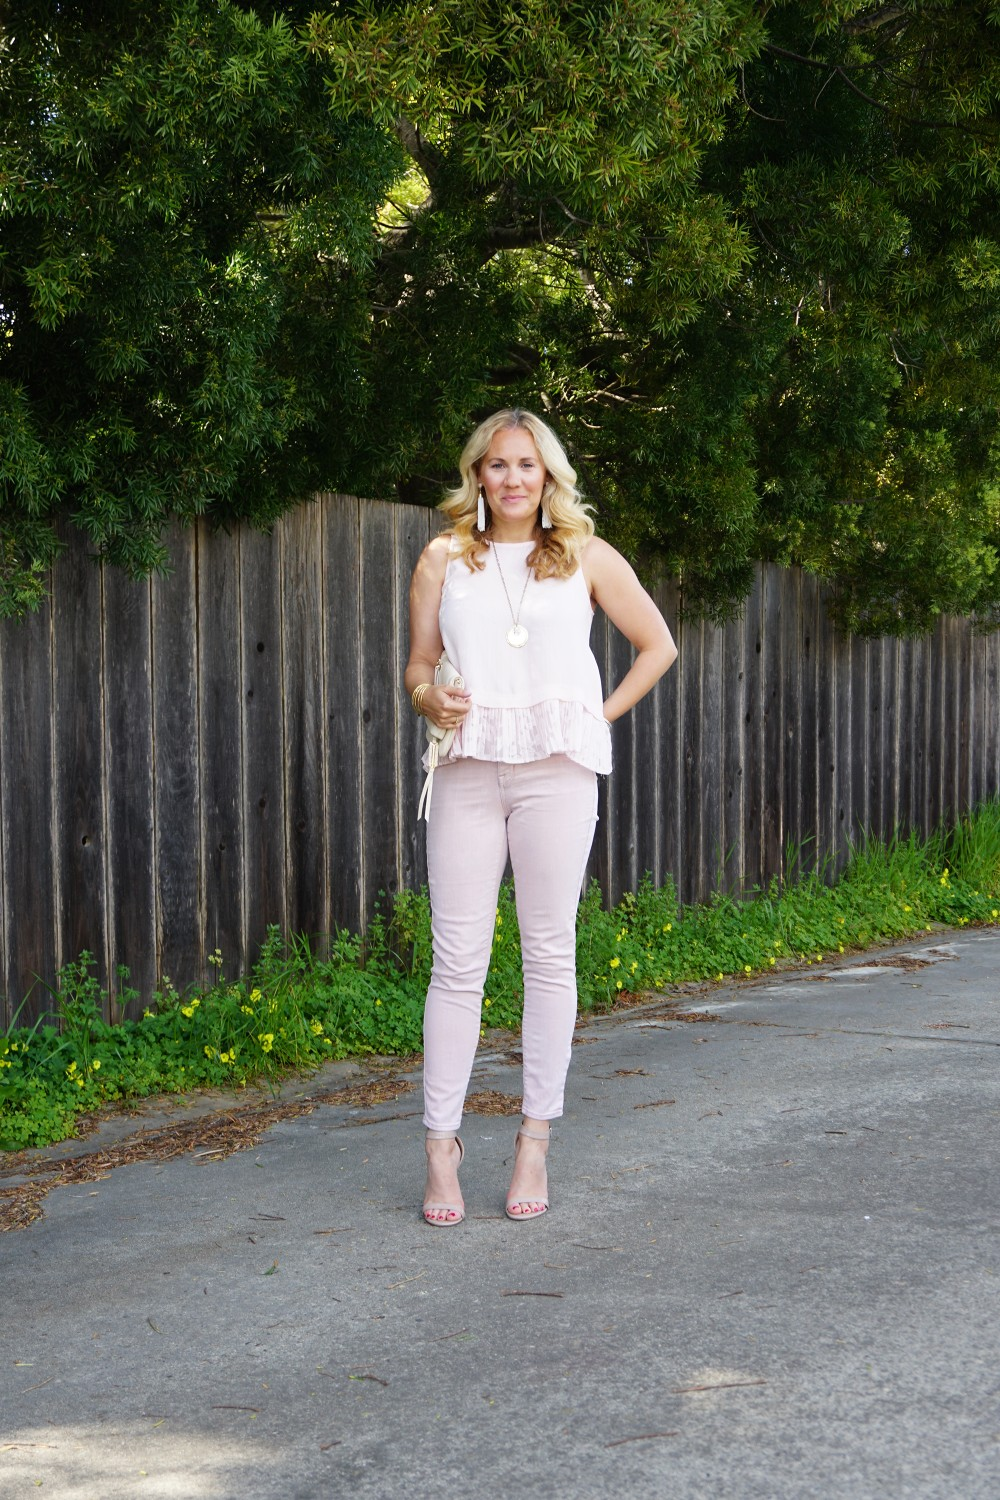 Blush Pink Easter Outfit-Easter Outfit Idea-Target Style-Who What Wear for Target-Outfit Inspiration-Have Need Want 10